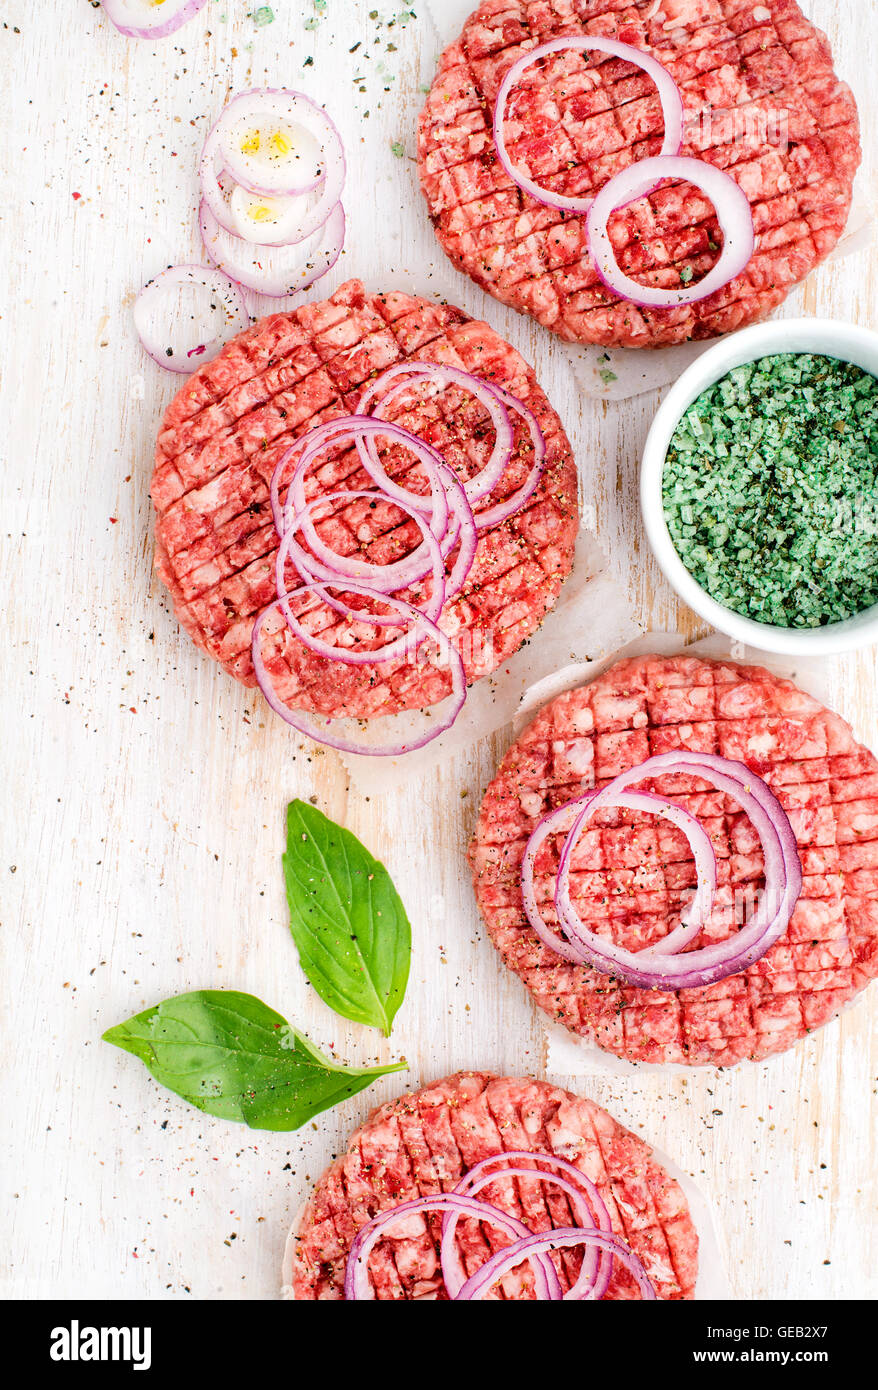 Raw ground beef meat cutlet for making burgers with onion rings and spices on white wooden background - Stock Image